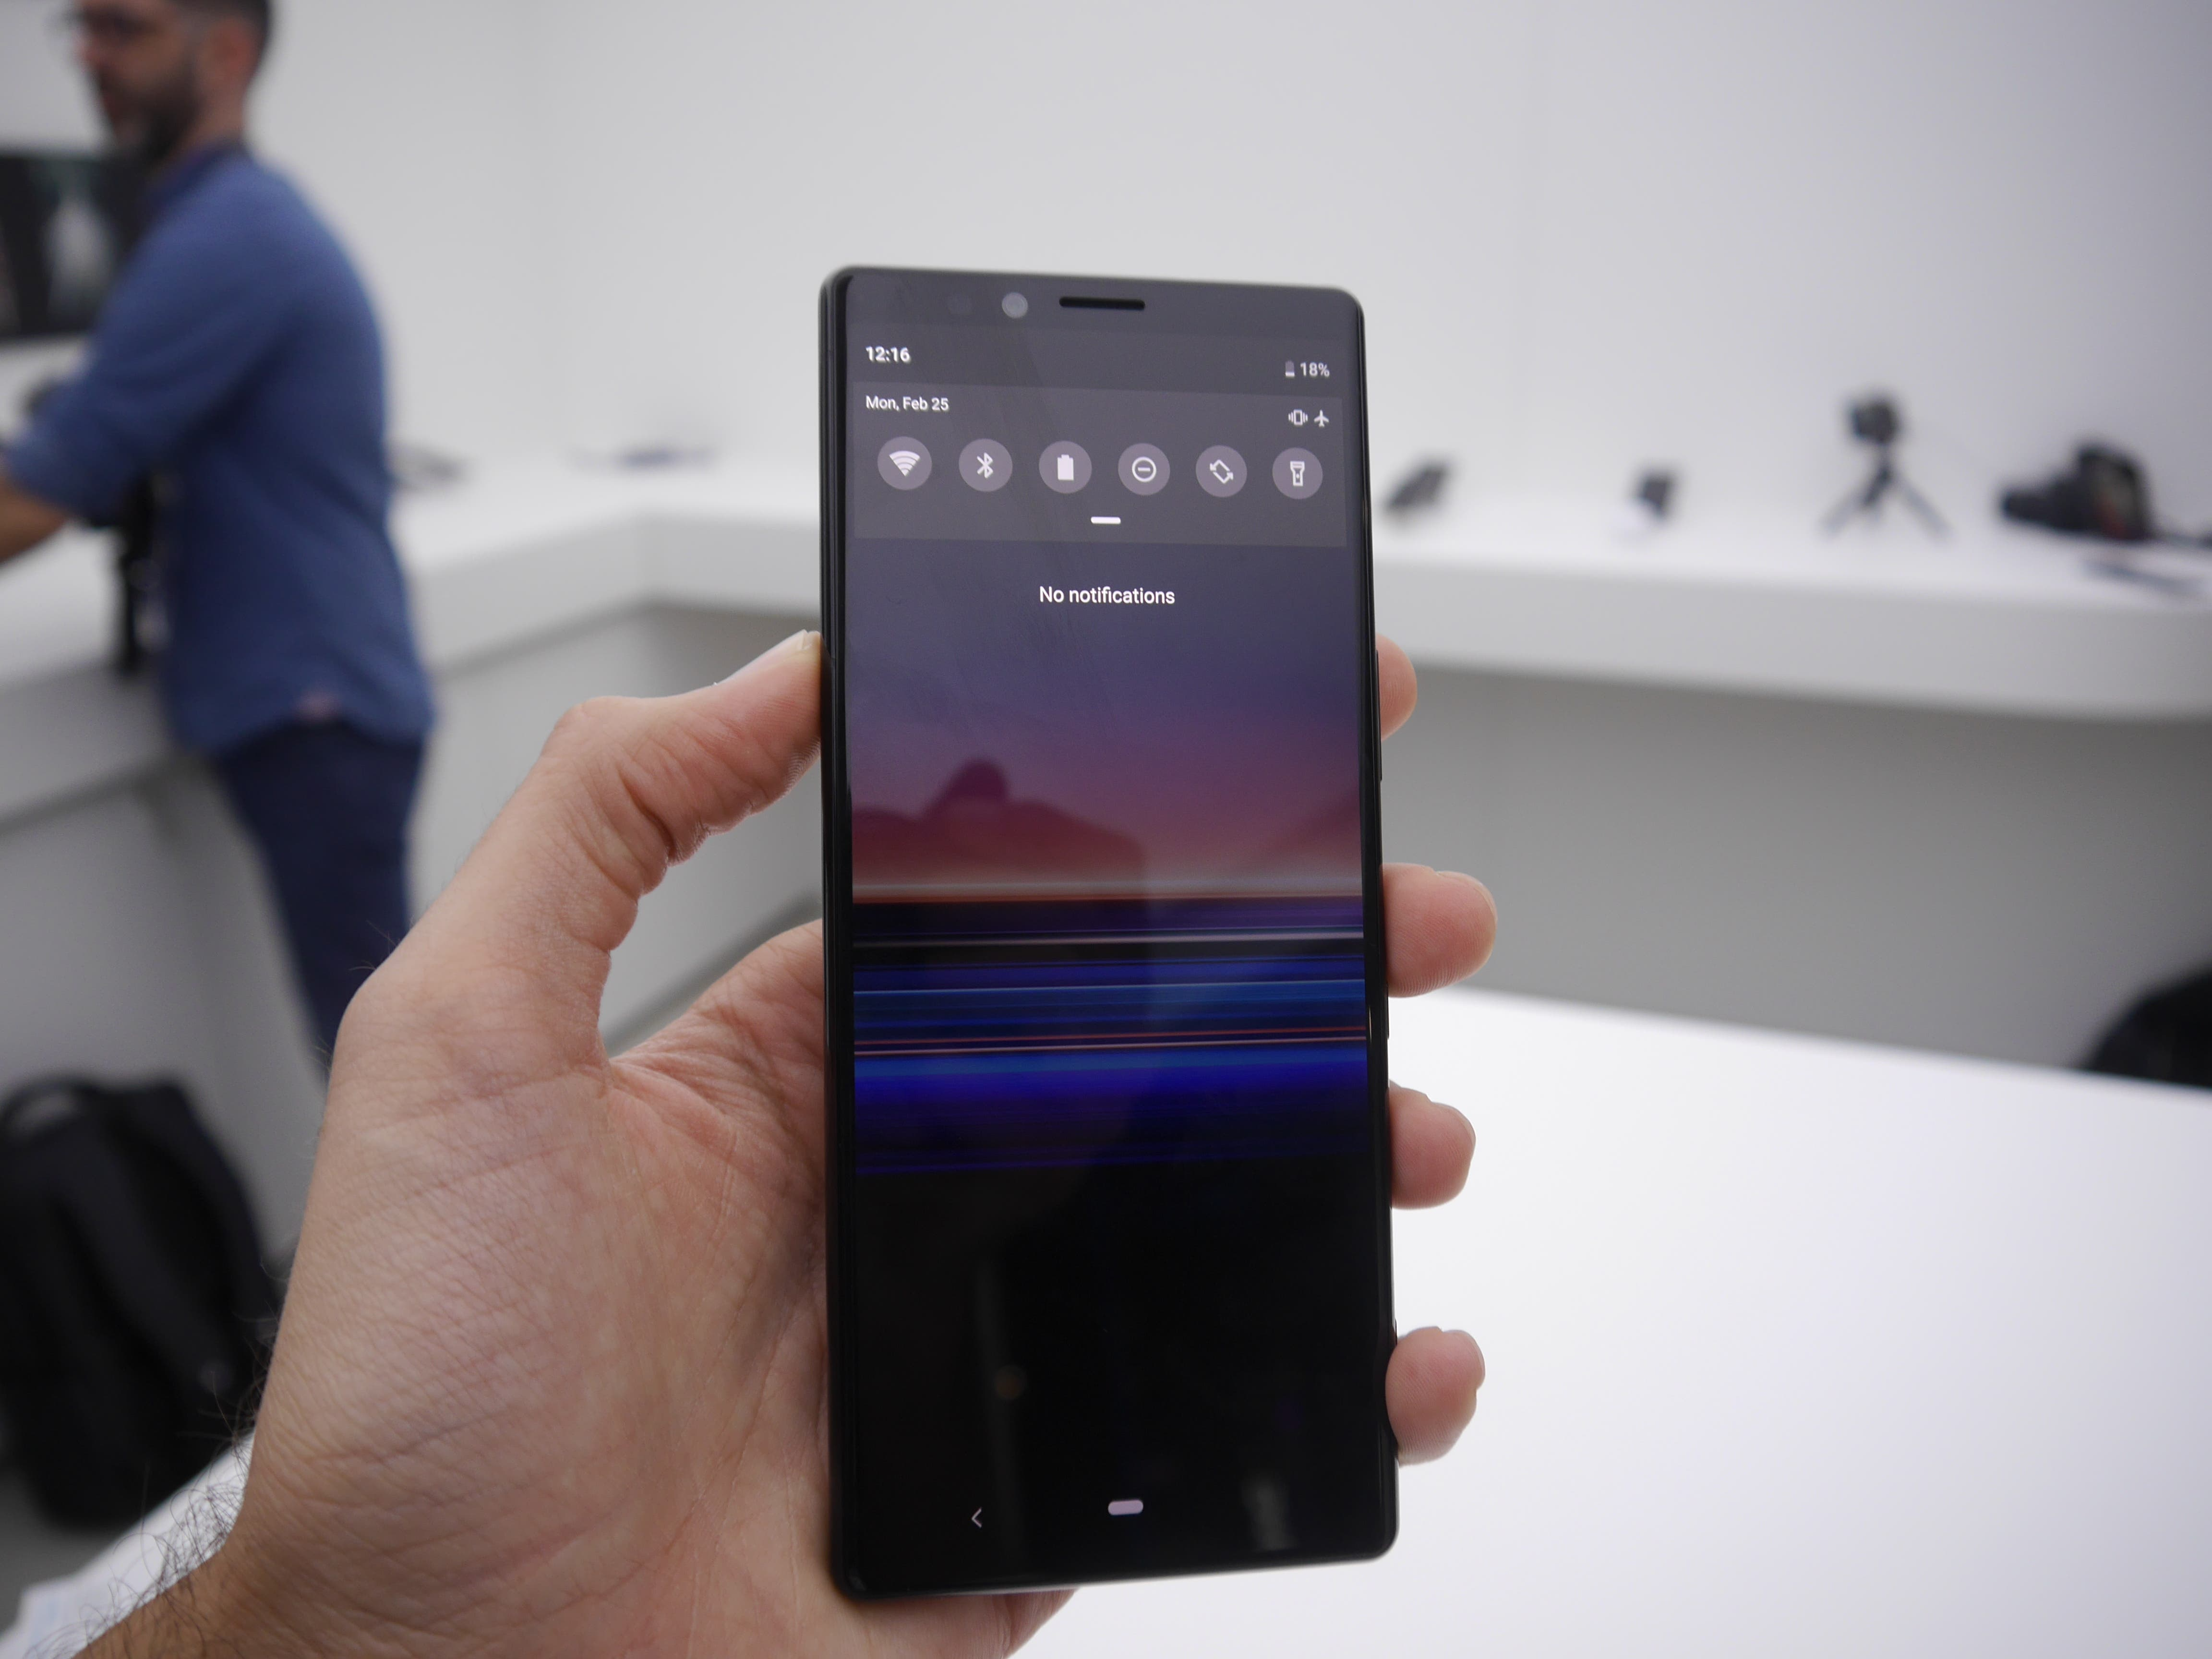 Sony Xperia 1 hands-on